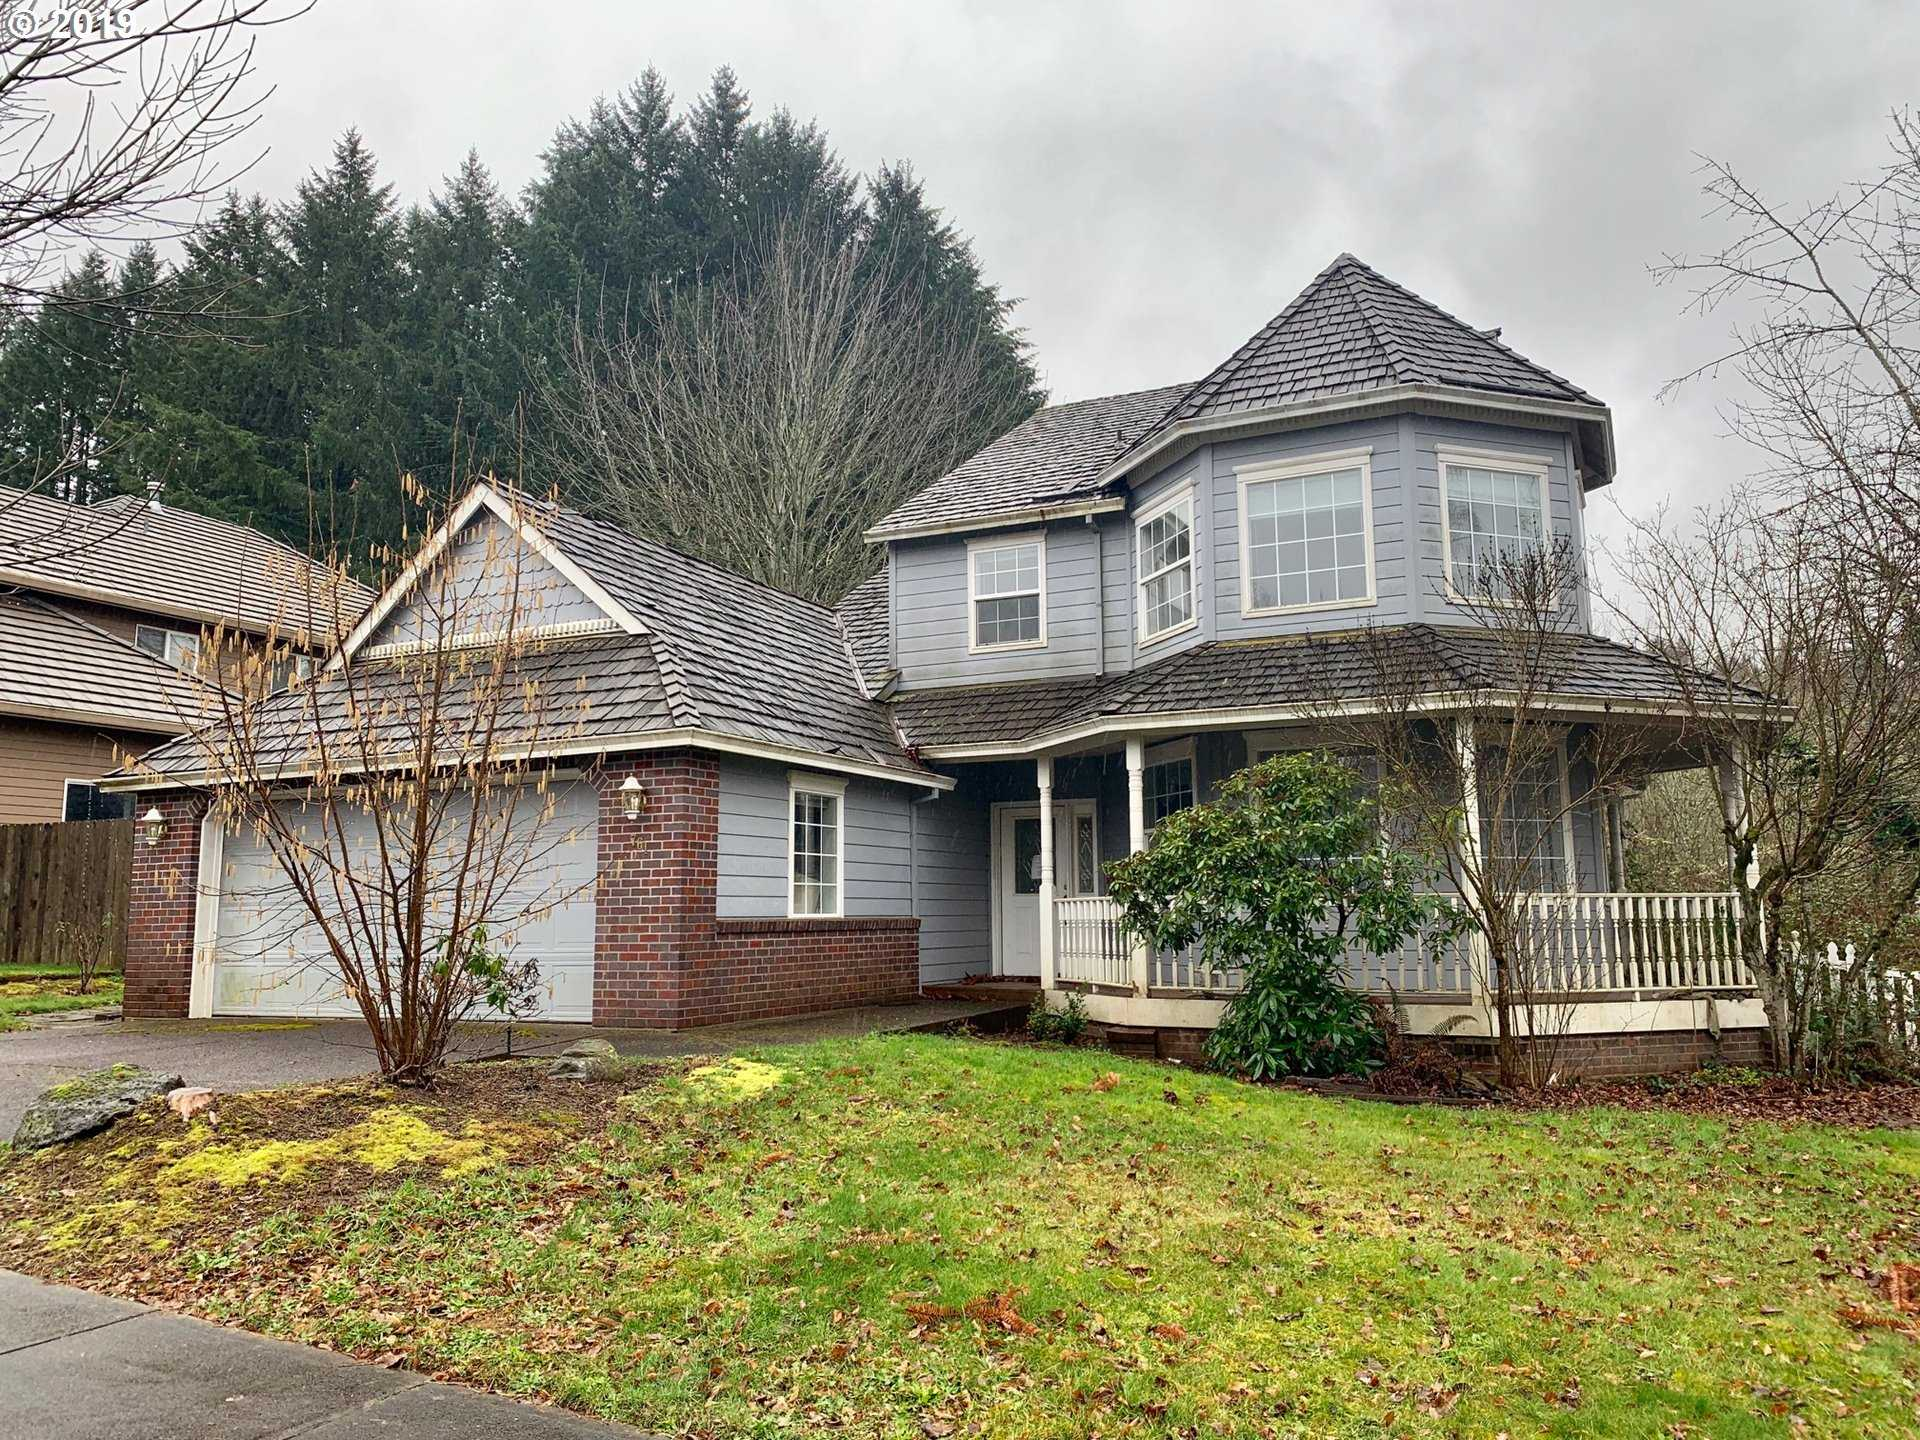 $450,000 - 3Br/3Ba -  for Sale in West Linn